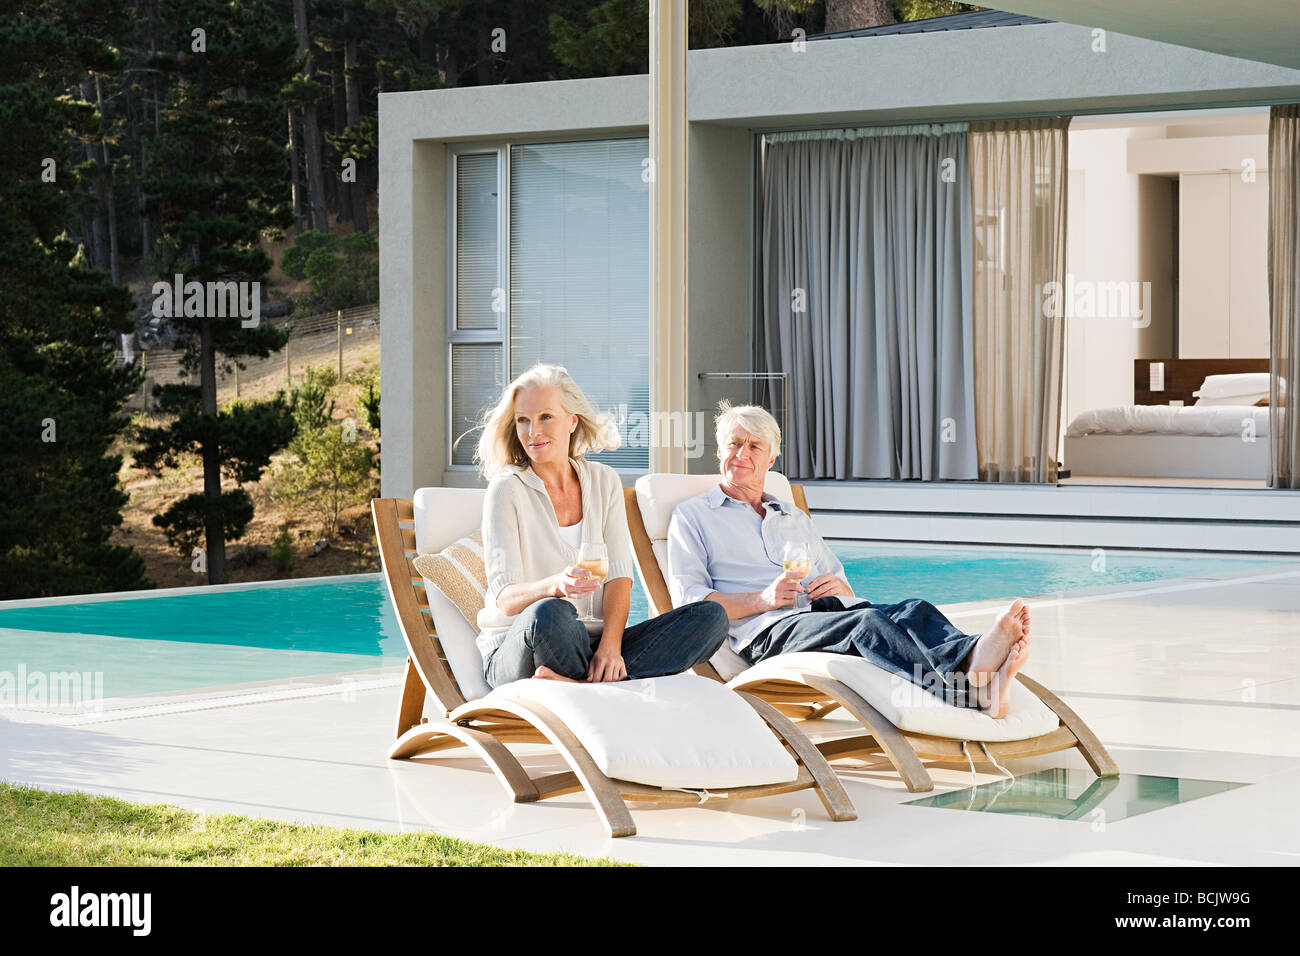 Middle aged couple relaxing on deck chairs by the pool - Stock Image